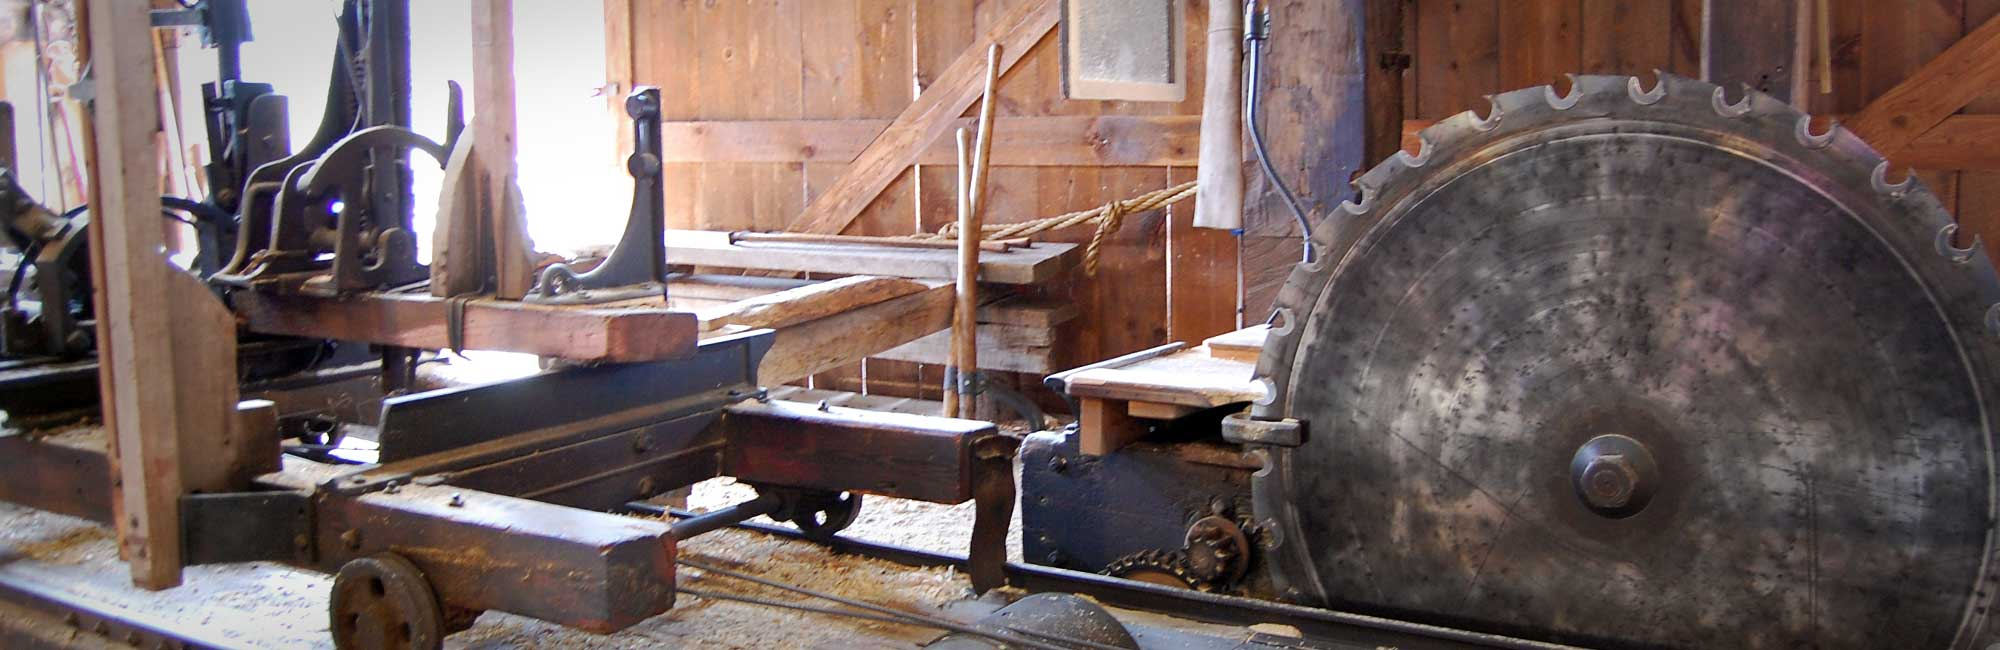 Hanford Mills  The Hanford Mills Museum features an authentic water and steampowered sawmill